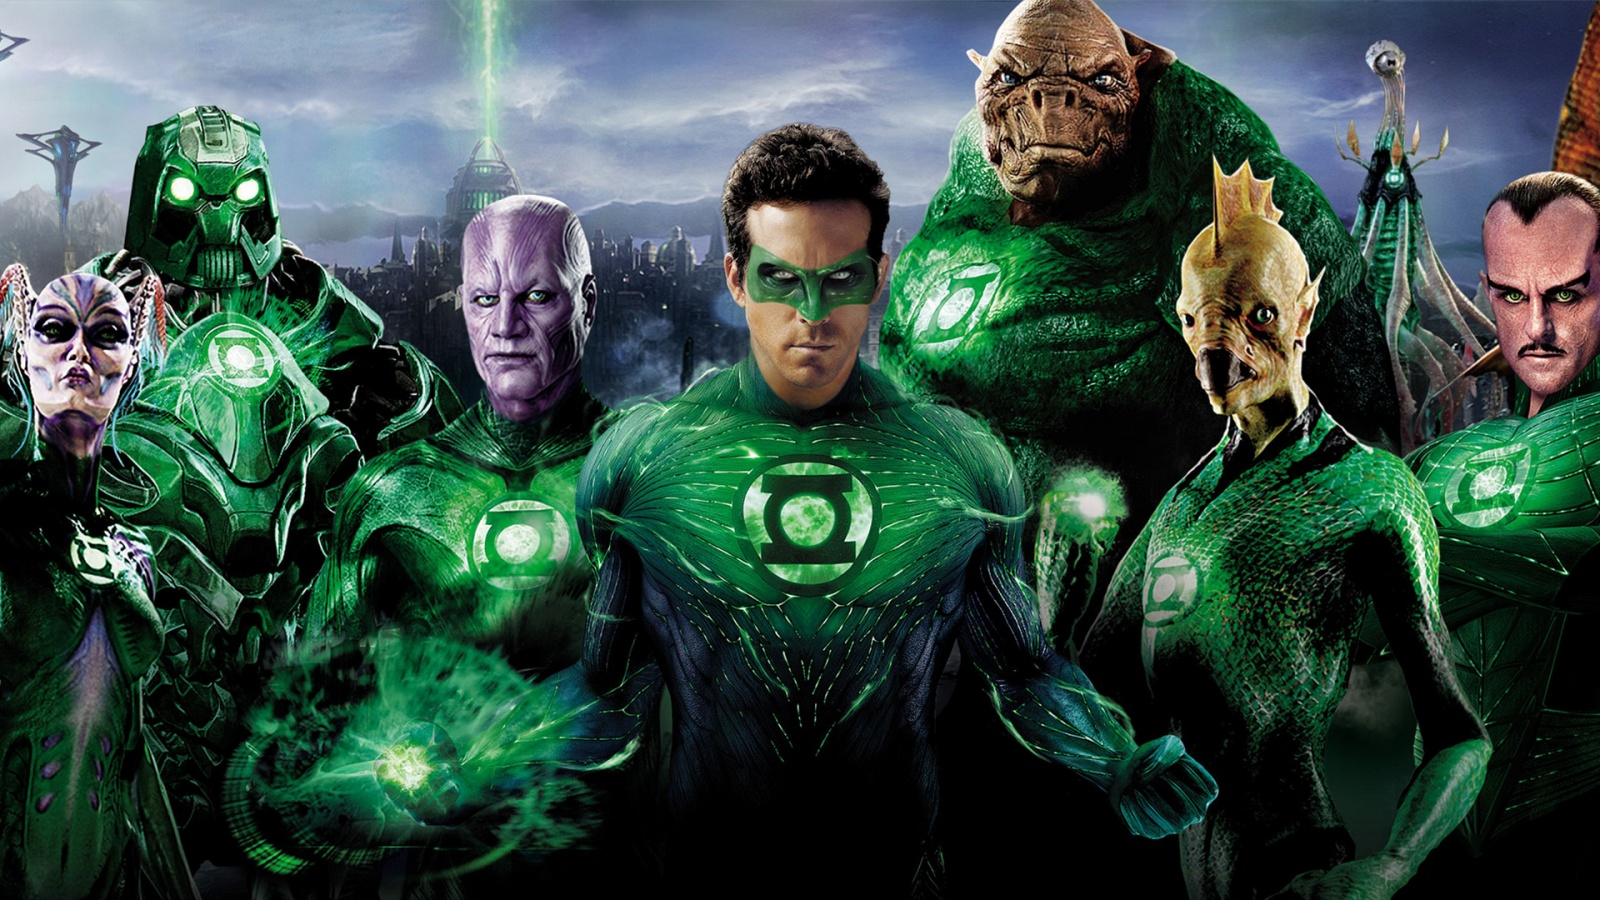 Lantern Superheroes Wallpapers HD Desktop Wallpapers 1600 900jpg 1600x900